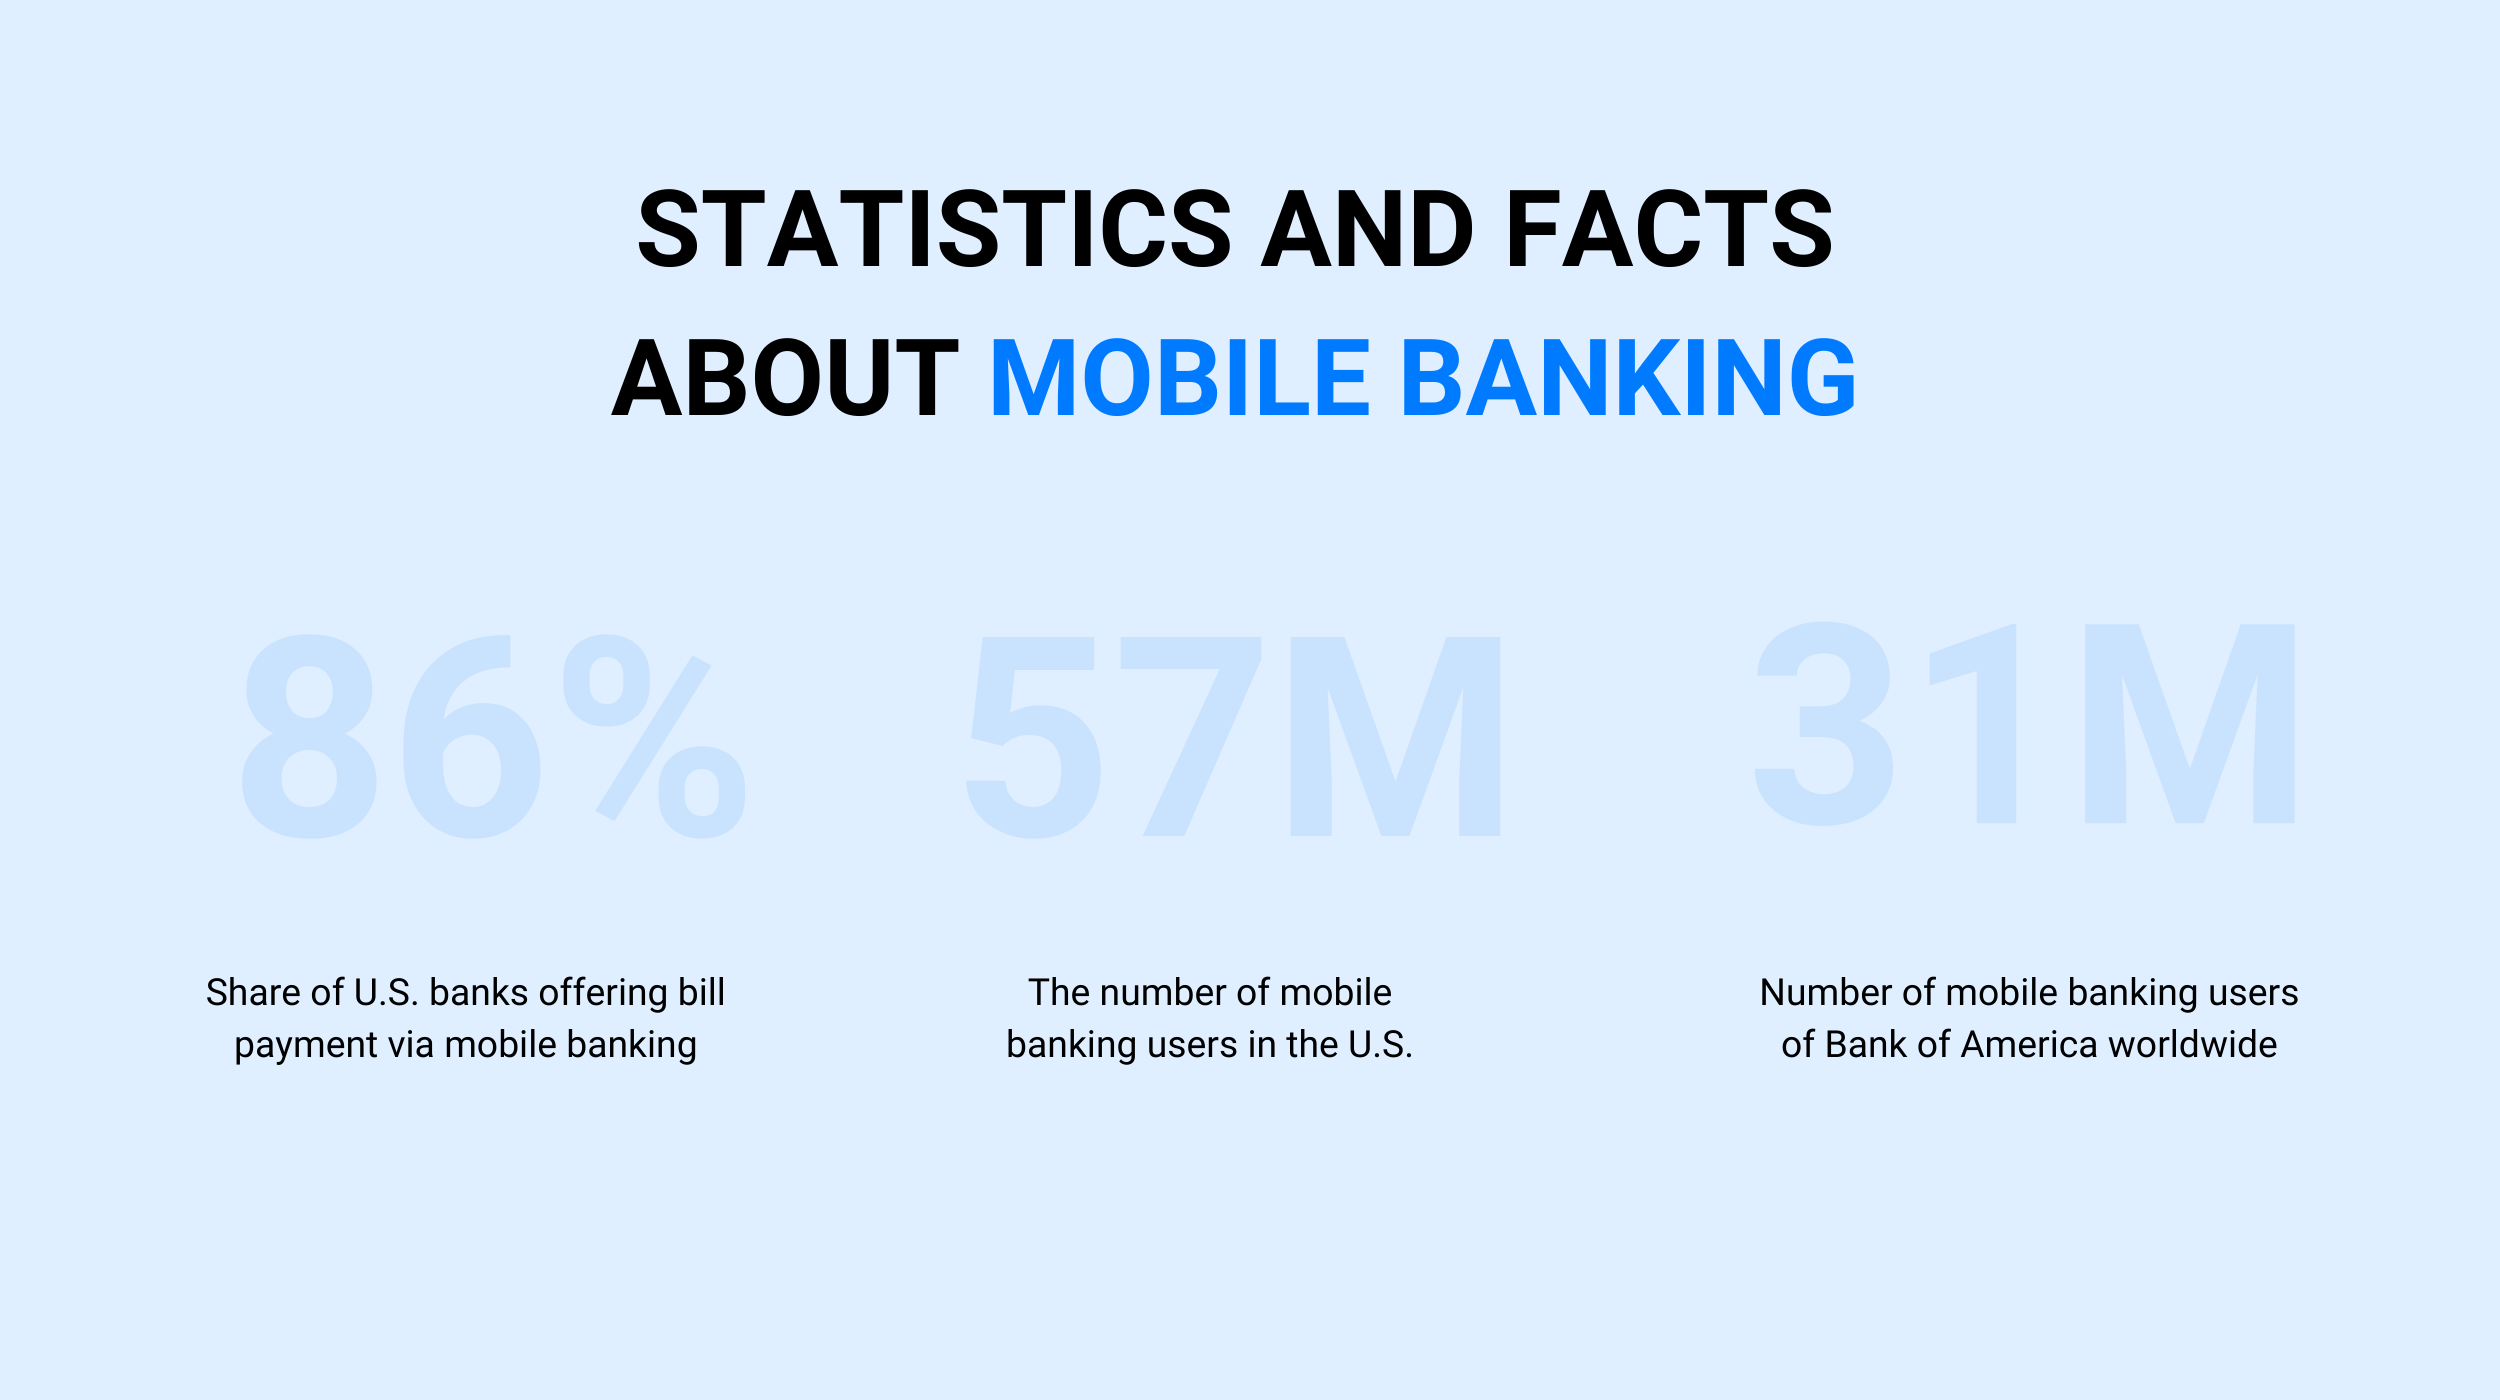 Statistics and facts about mobile banking